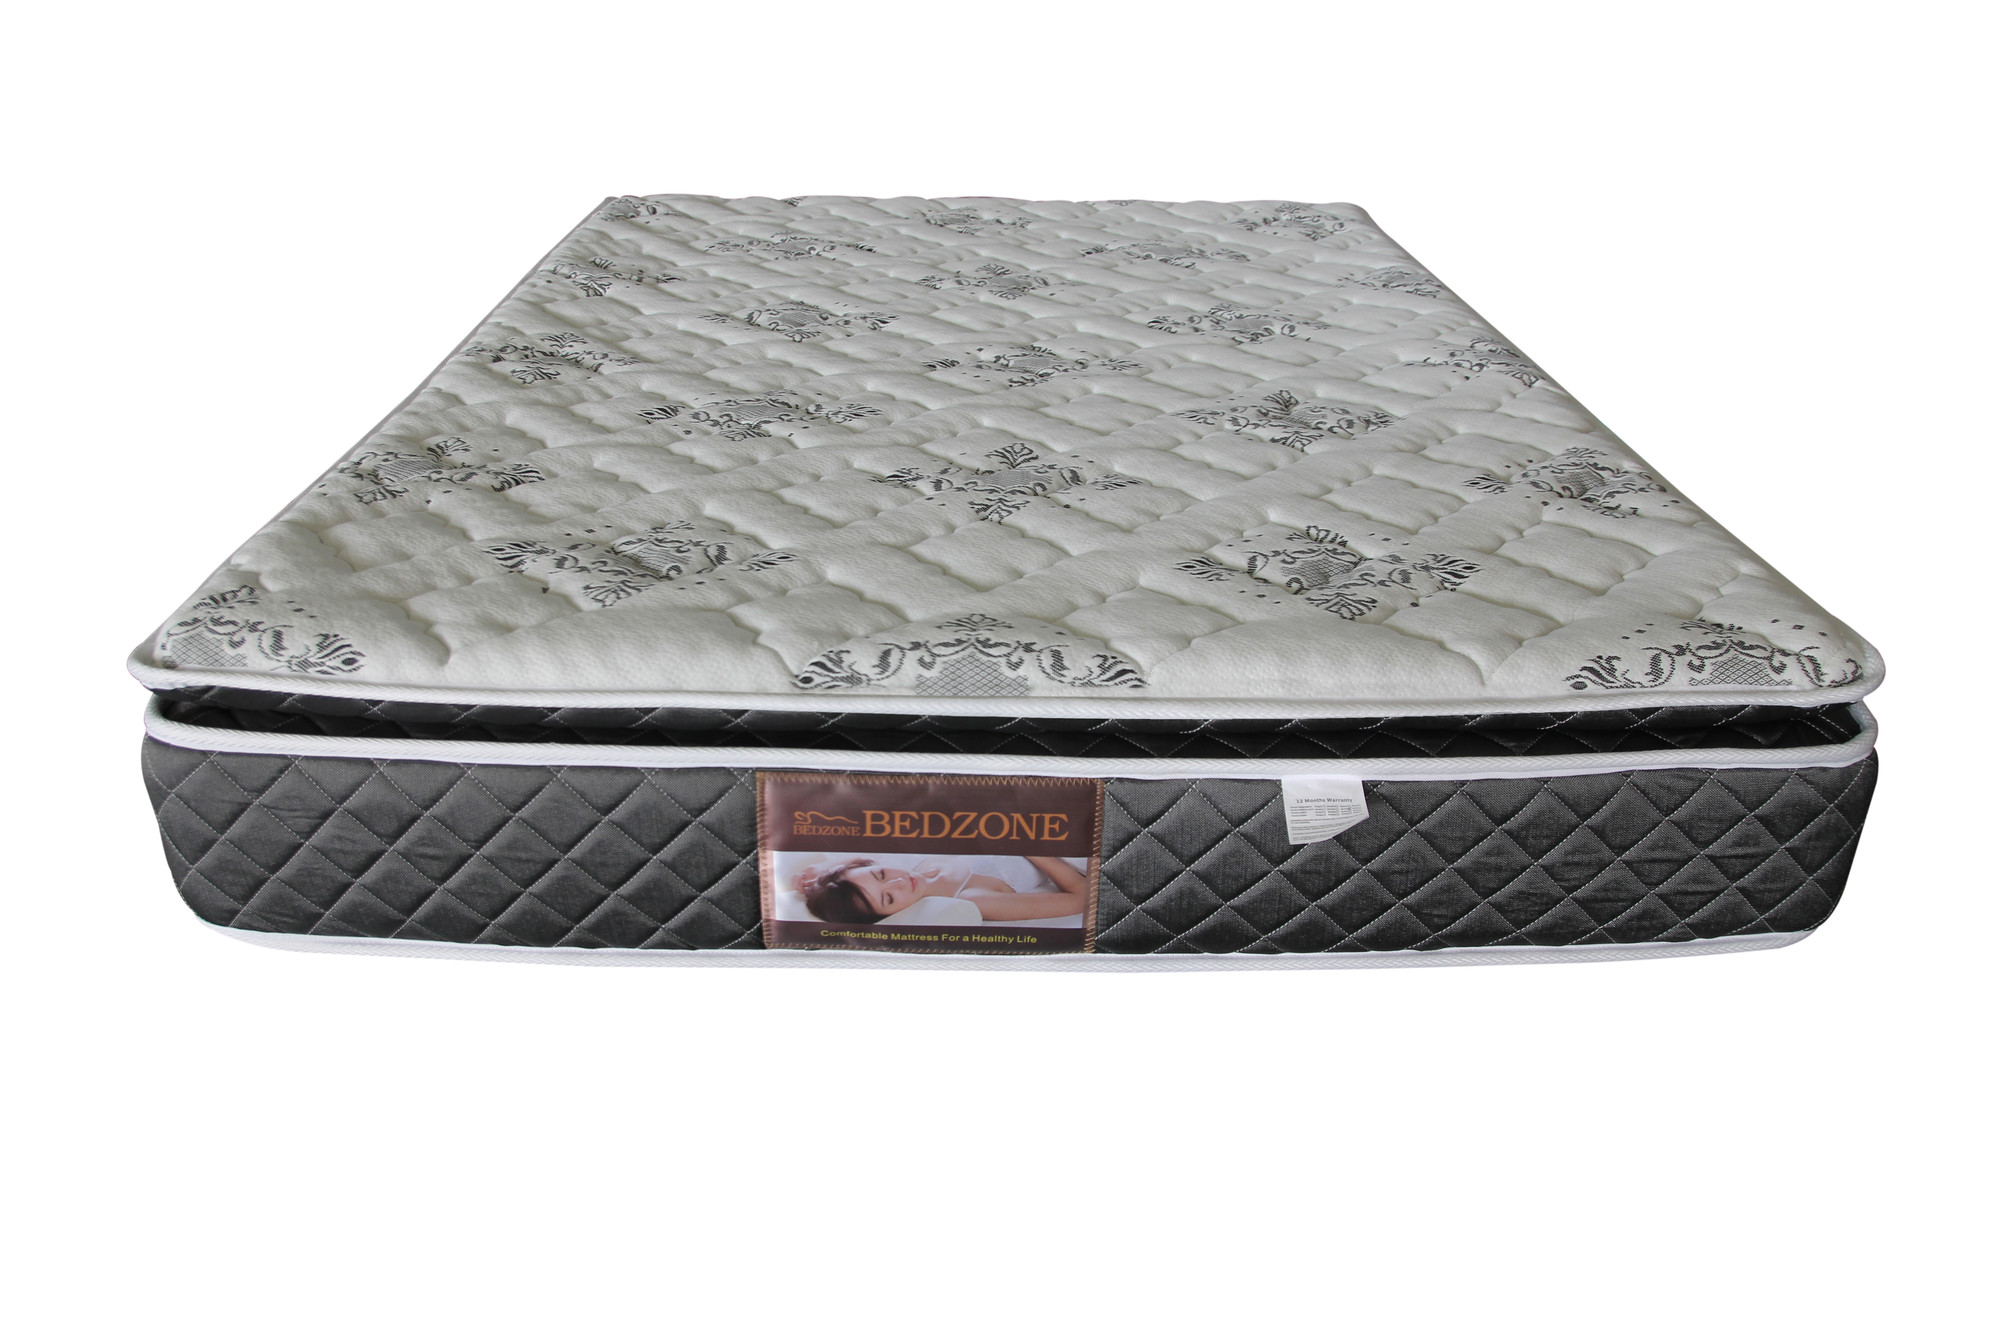 spring pillow extra topper bonnel top mattress